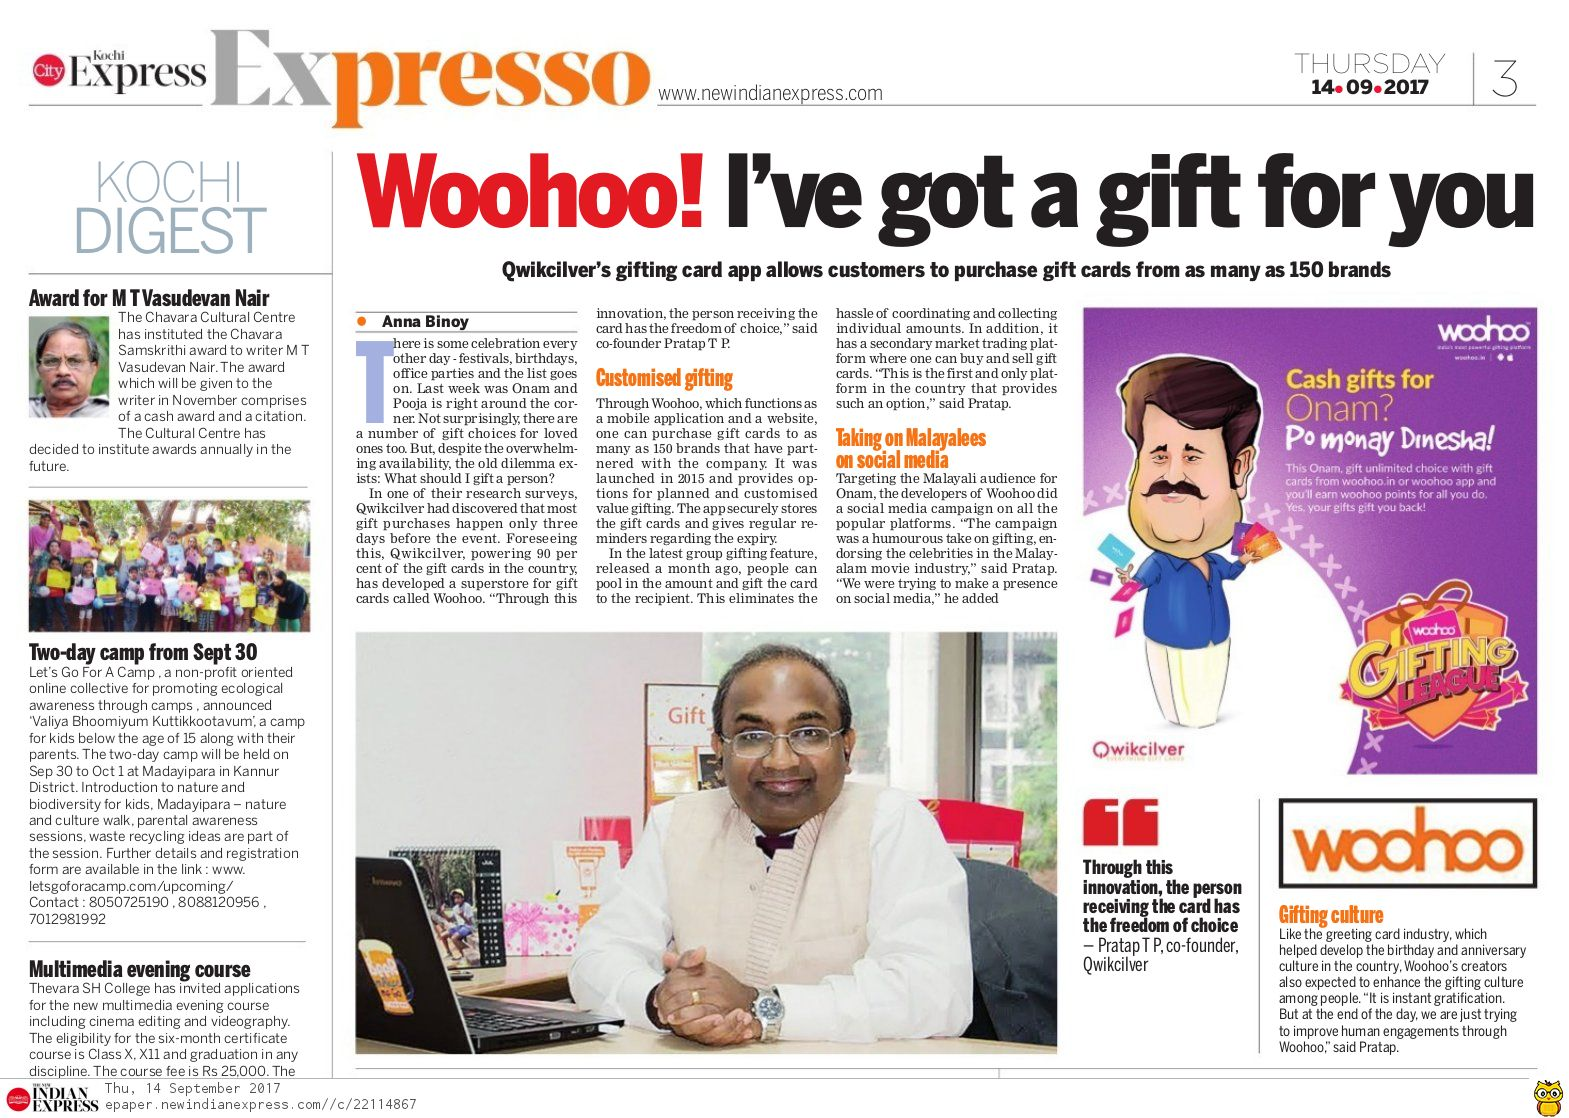 woohoo in new indian express